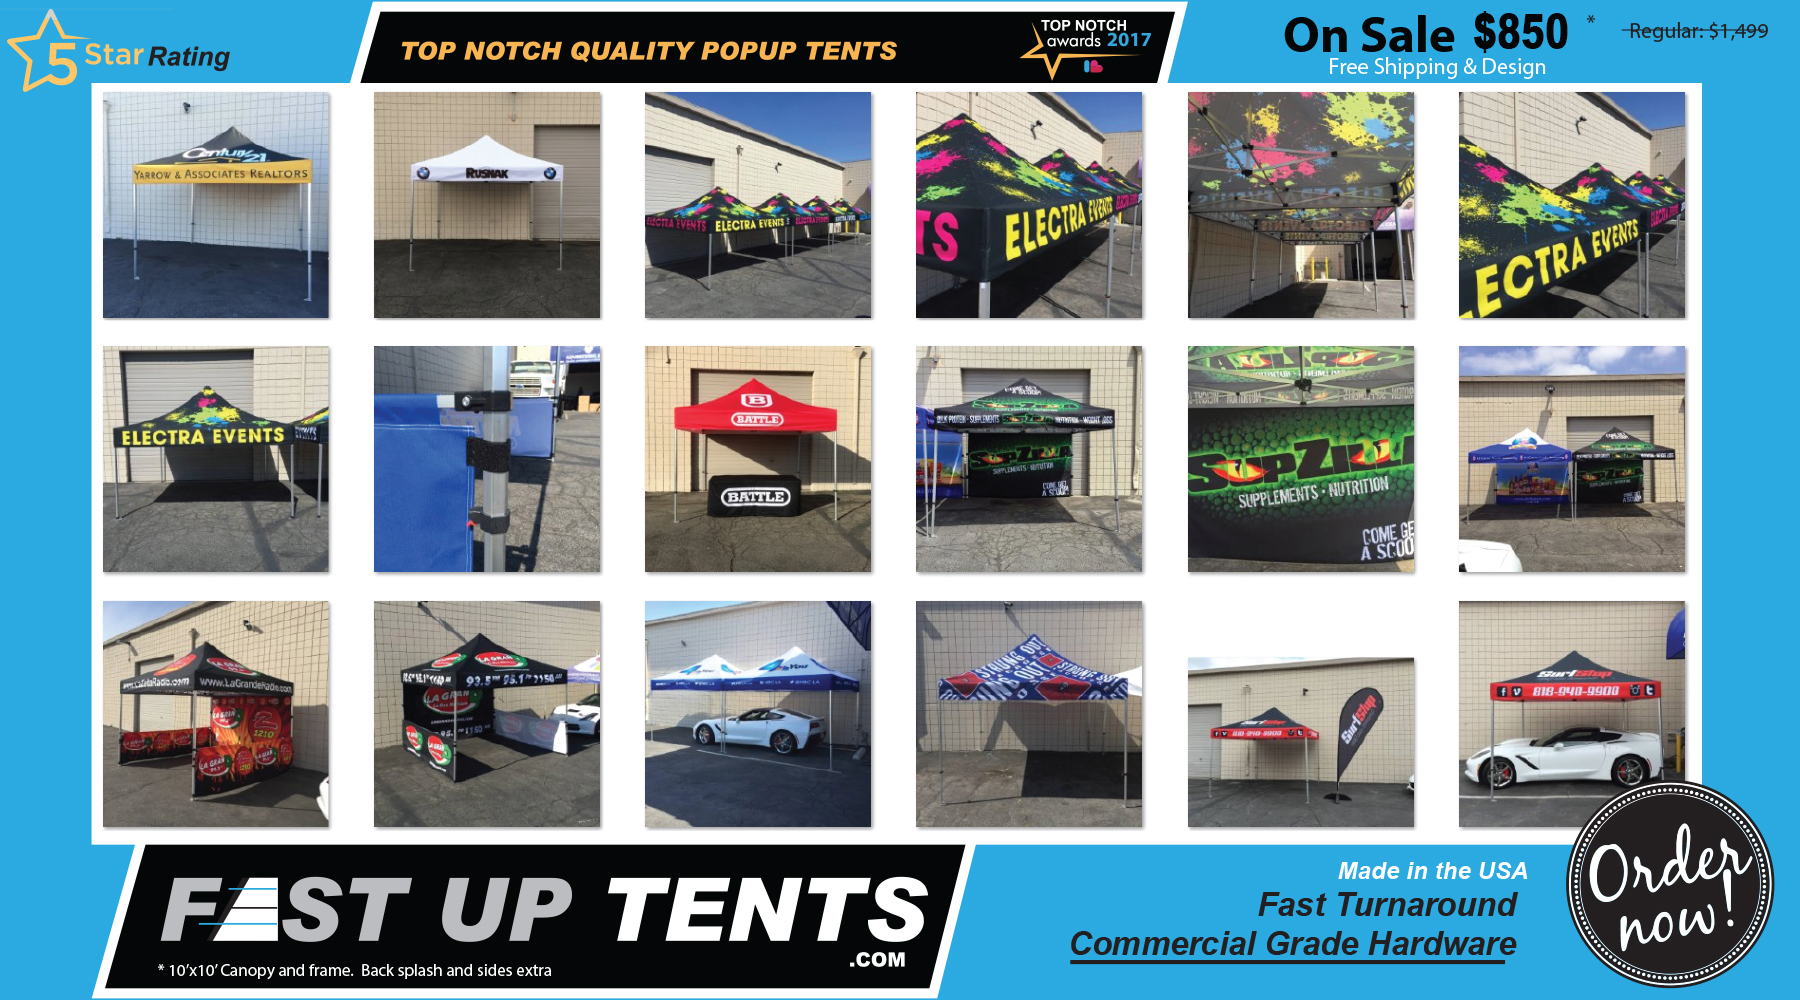 AD%20-%20FAST%20UP%20TENTS.jpg